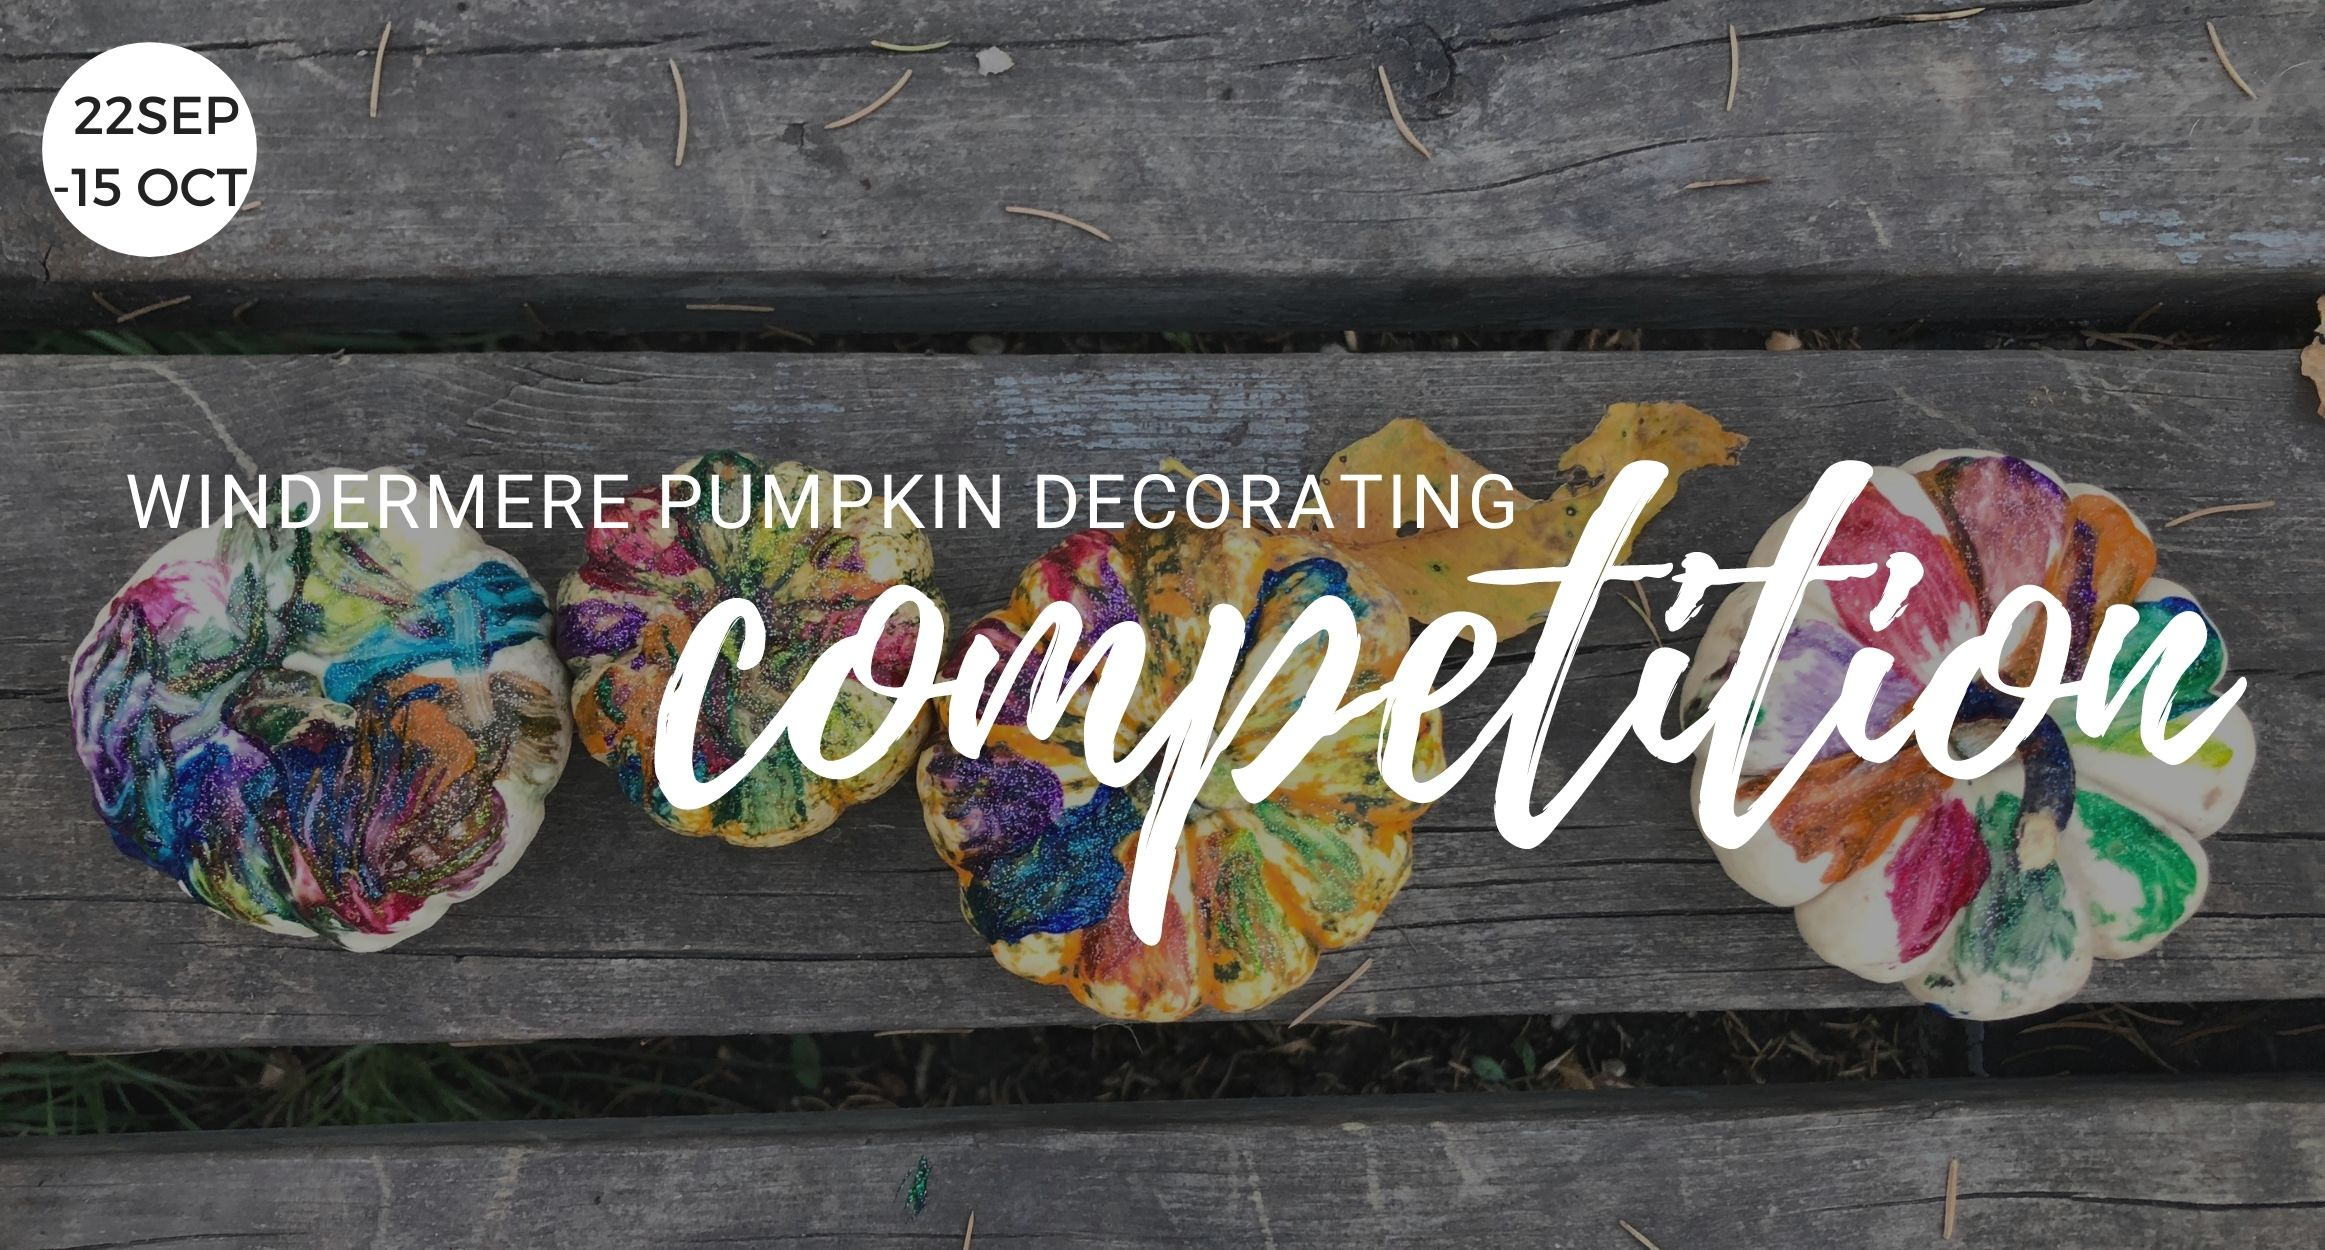 Windermere Pumpkin Decorating Competition